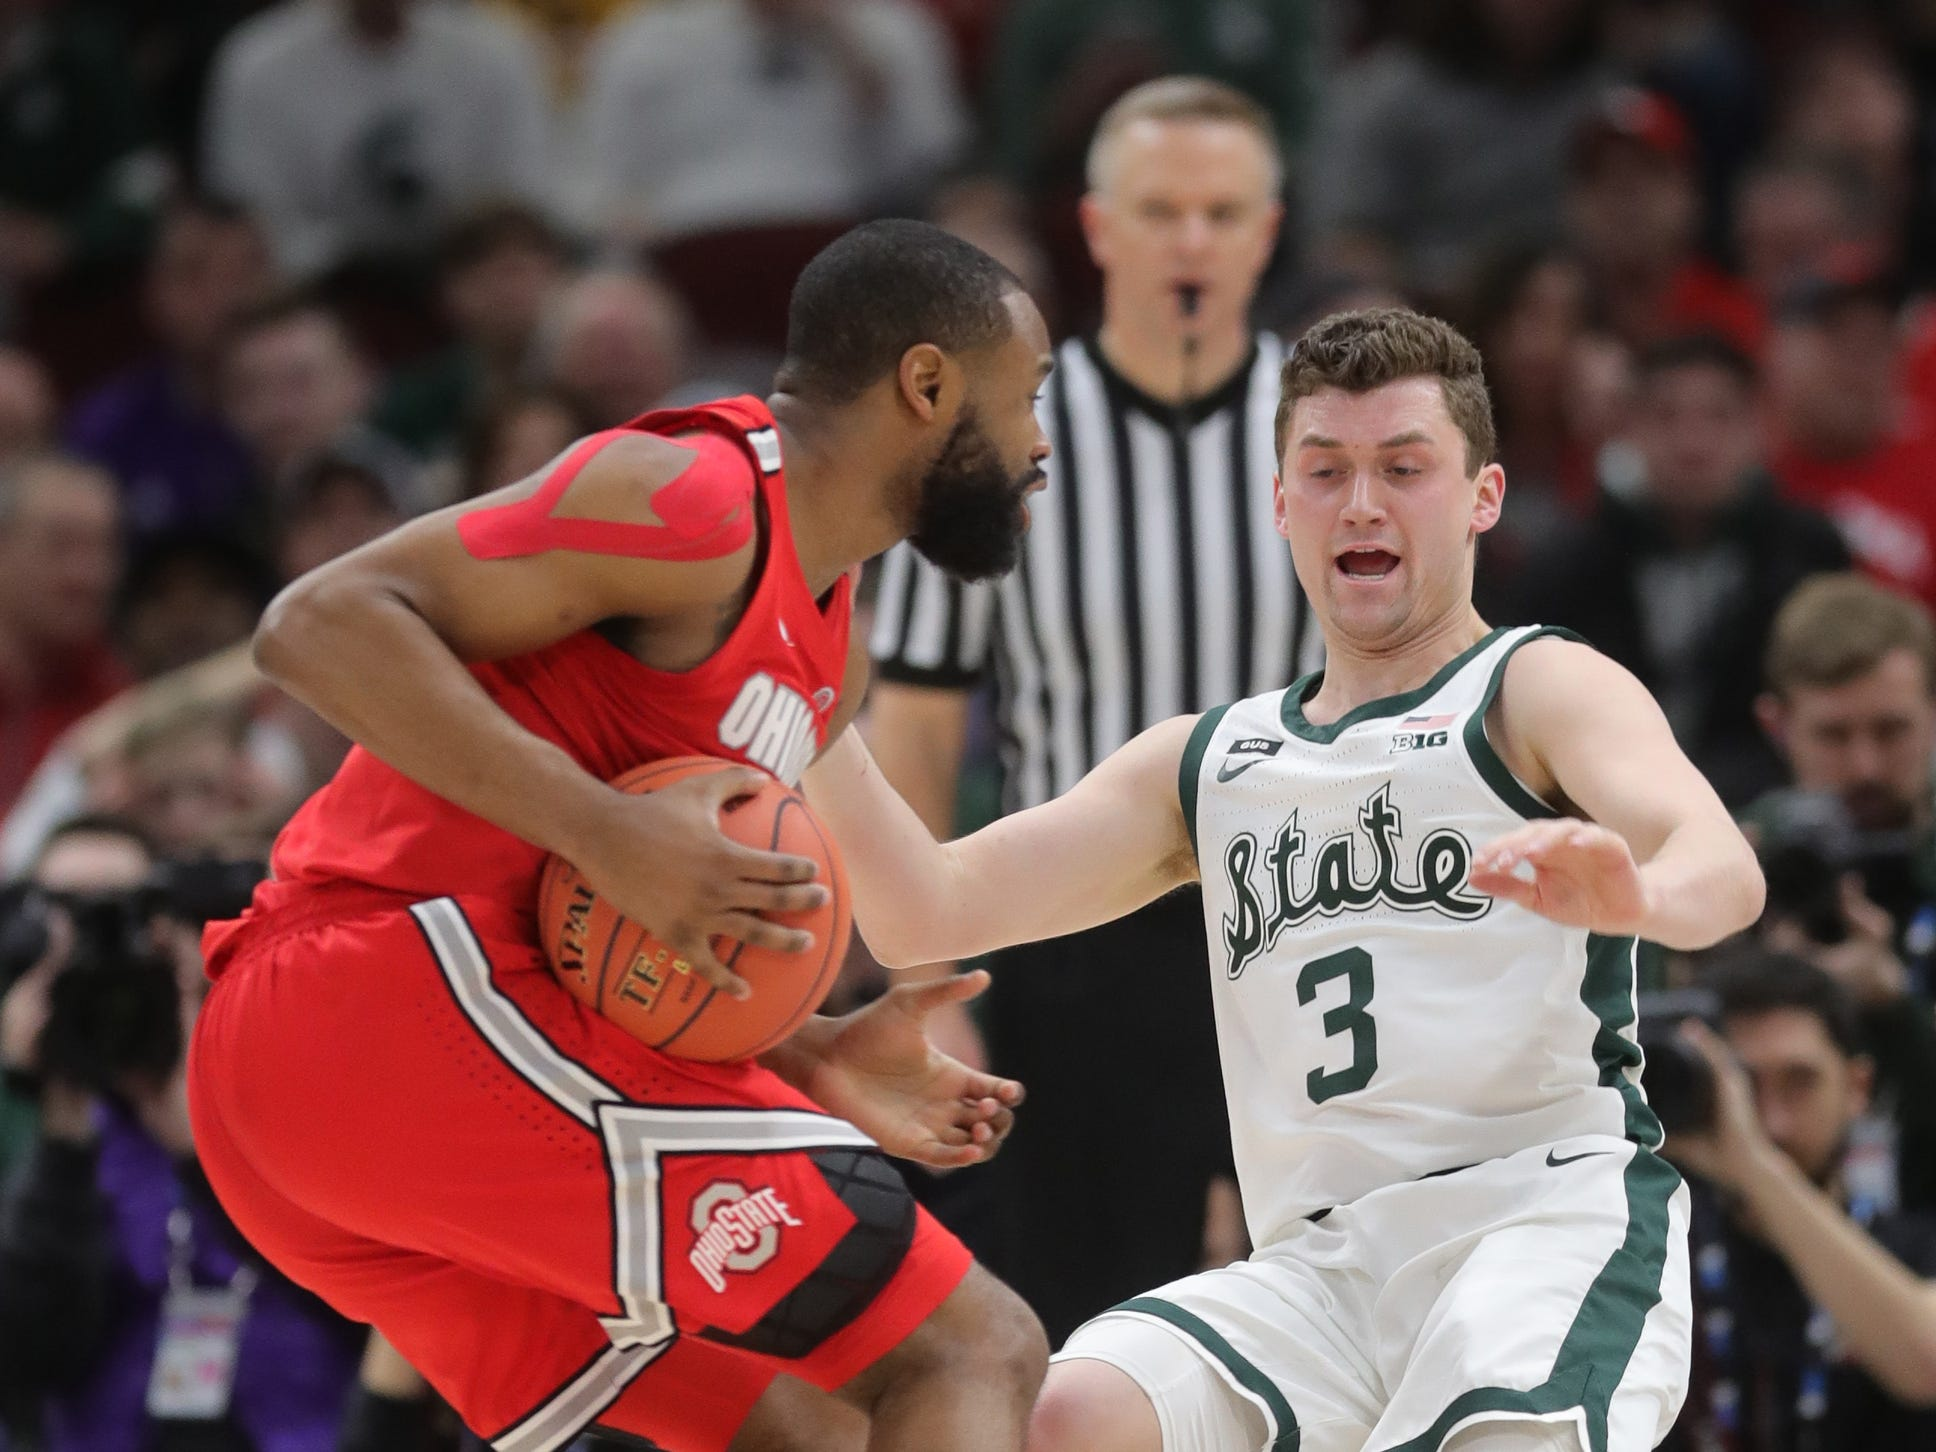 Michigan State's Foster Loyer takes the charge against Ohio State's Keyshawn Woods during the first half of the Big Ten tournament Friday, March 15, 2019 at the United Center in Chicago.